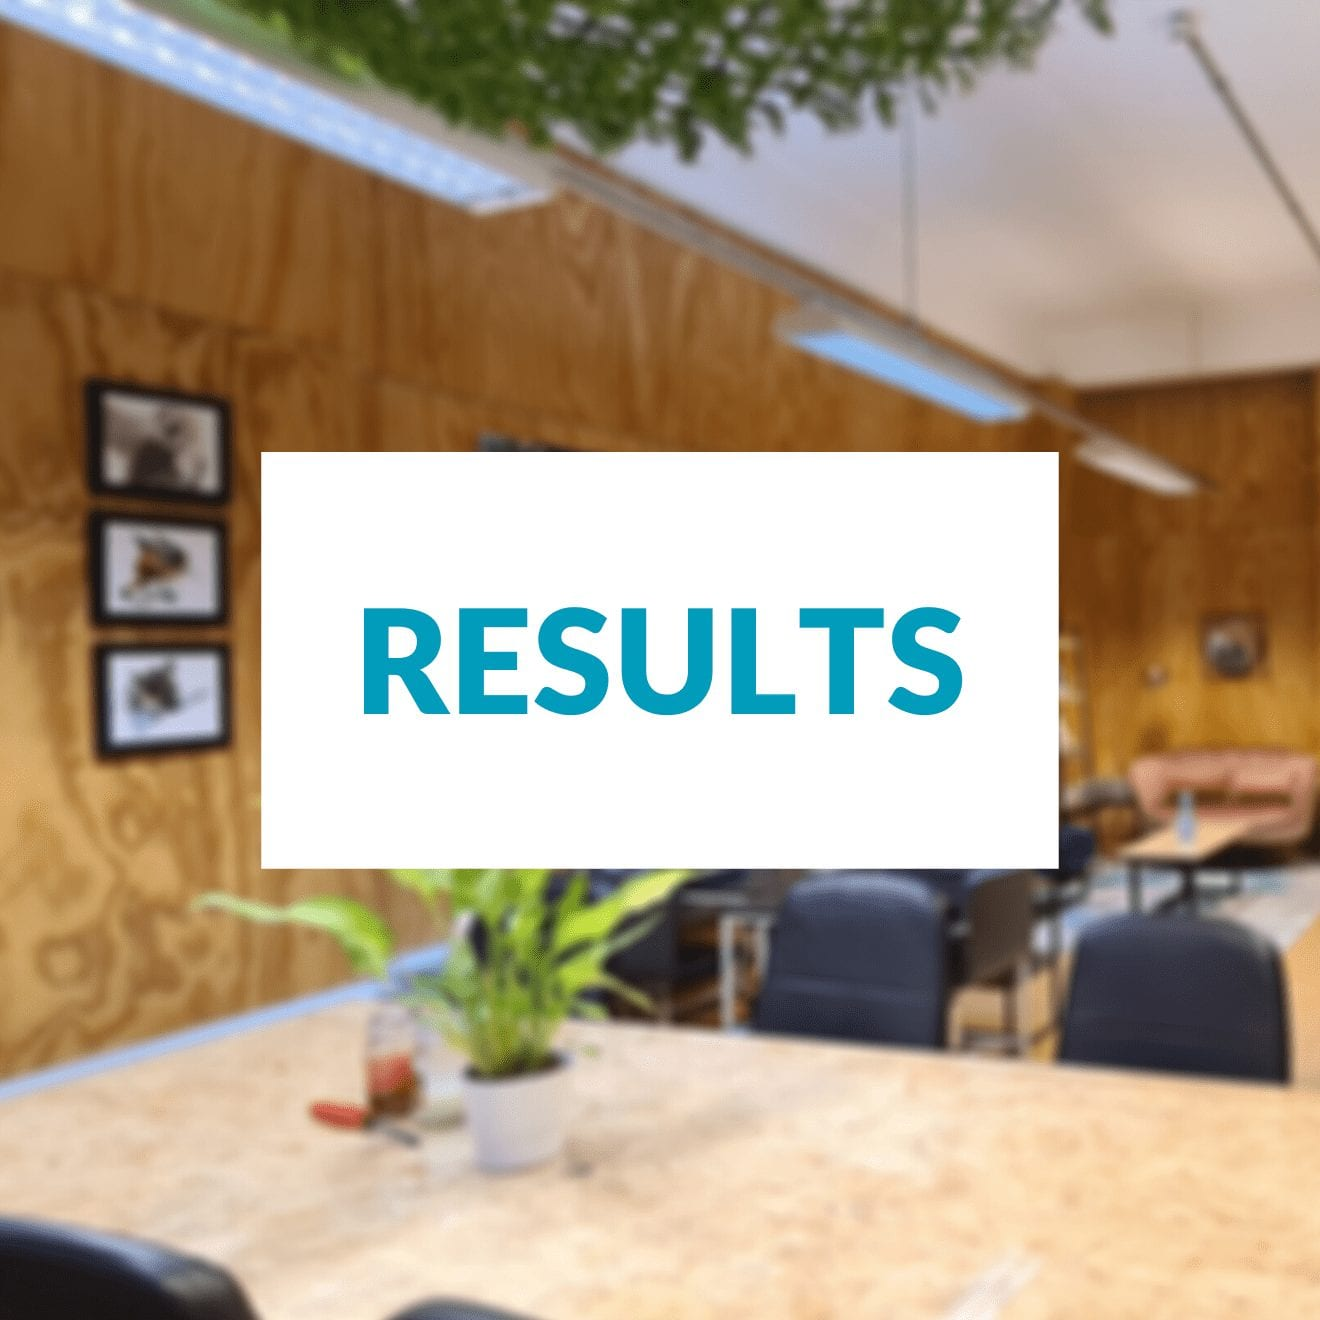 Results and our office picture in the background